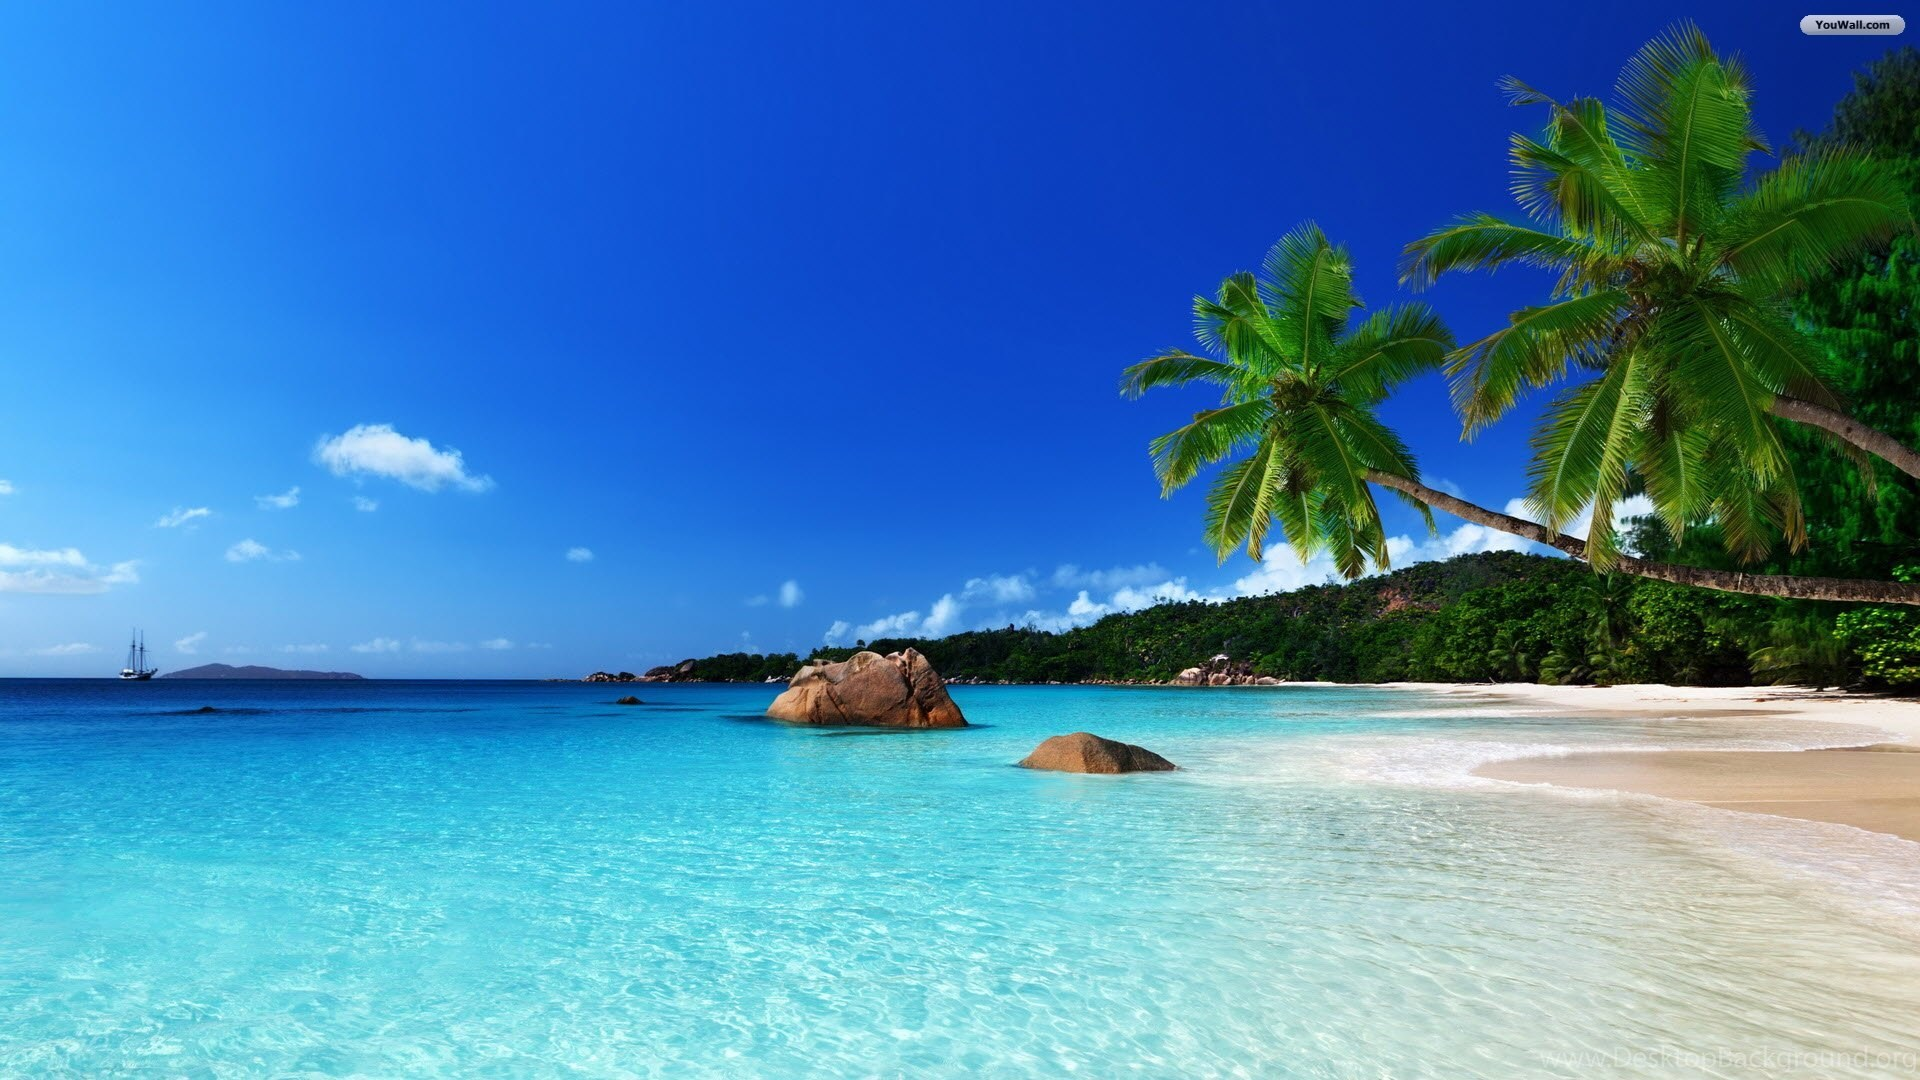 Beach Desktop Backgrounds 1920x1080 Best HD Desktop ...